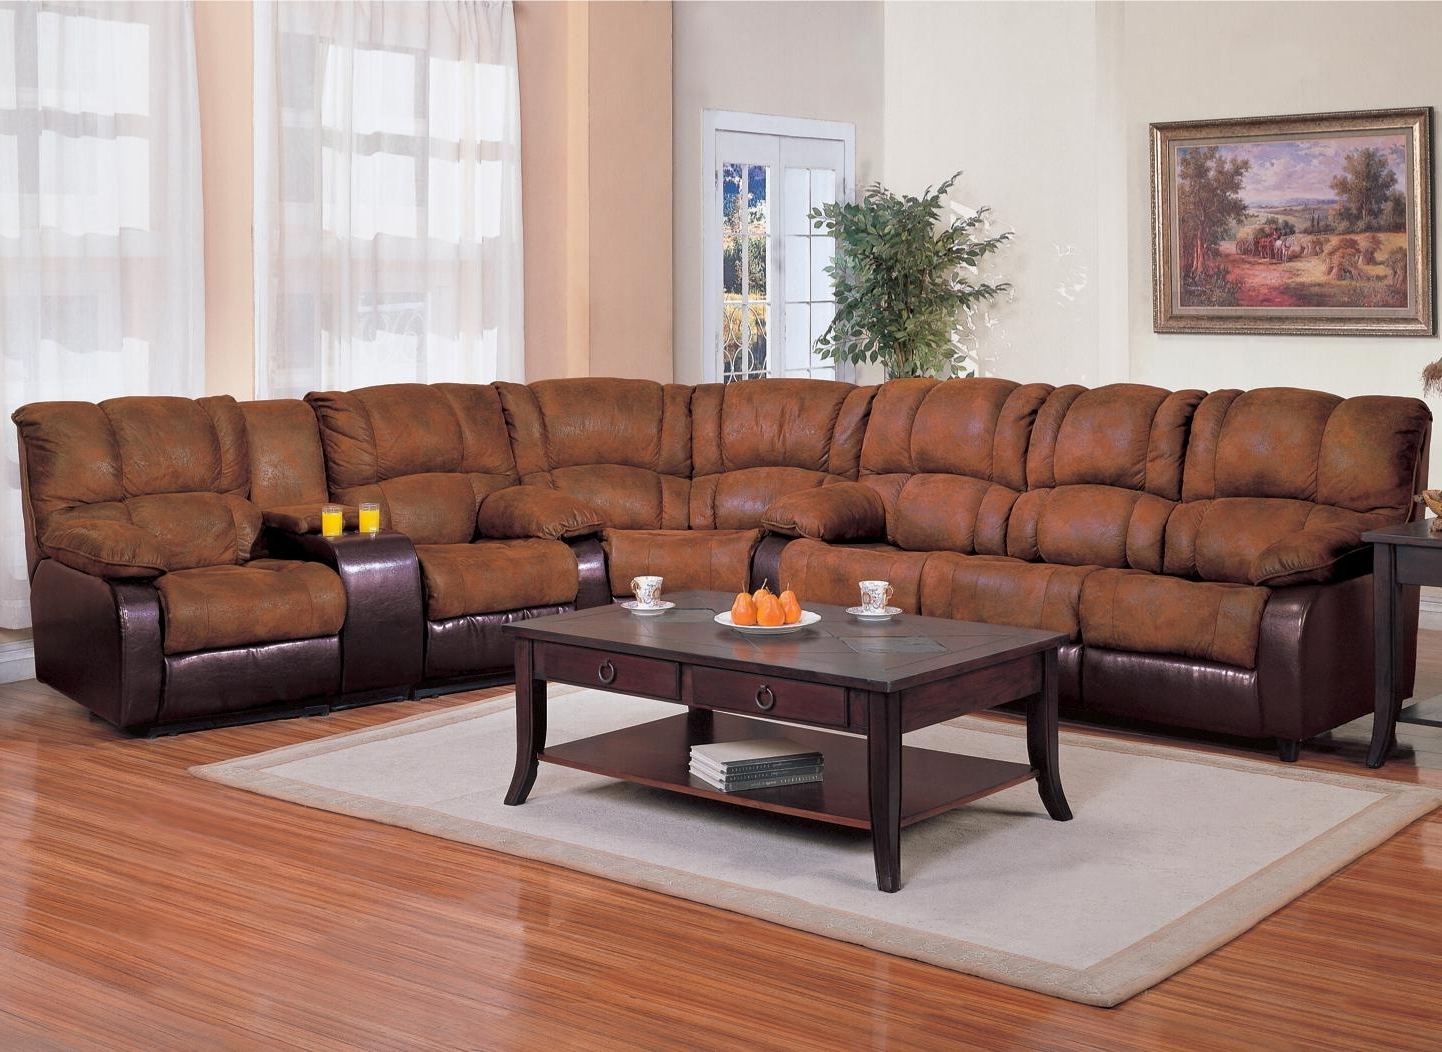 Guelph Sectional Sofas inside Current Furniture : Sectional Sofa Tufted Recliner Vector Sectional Couch